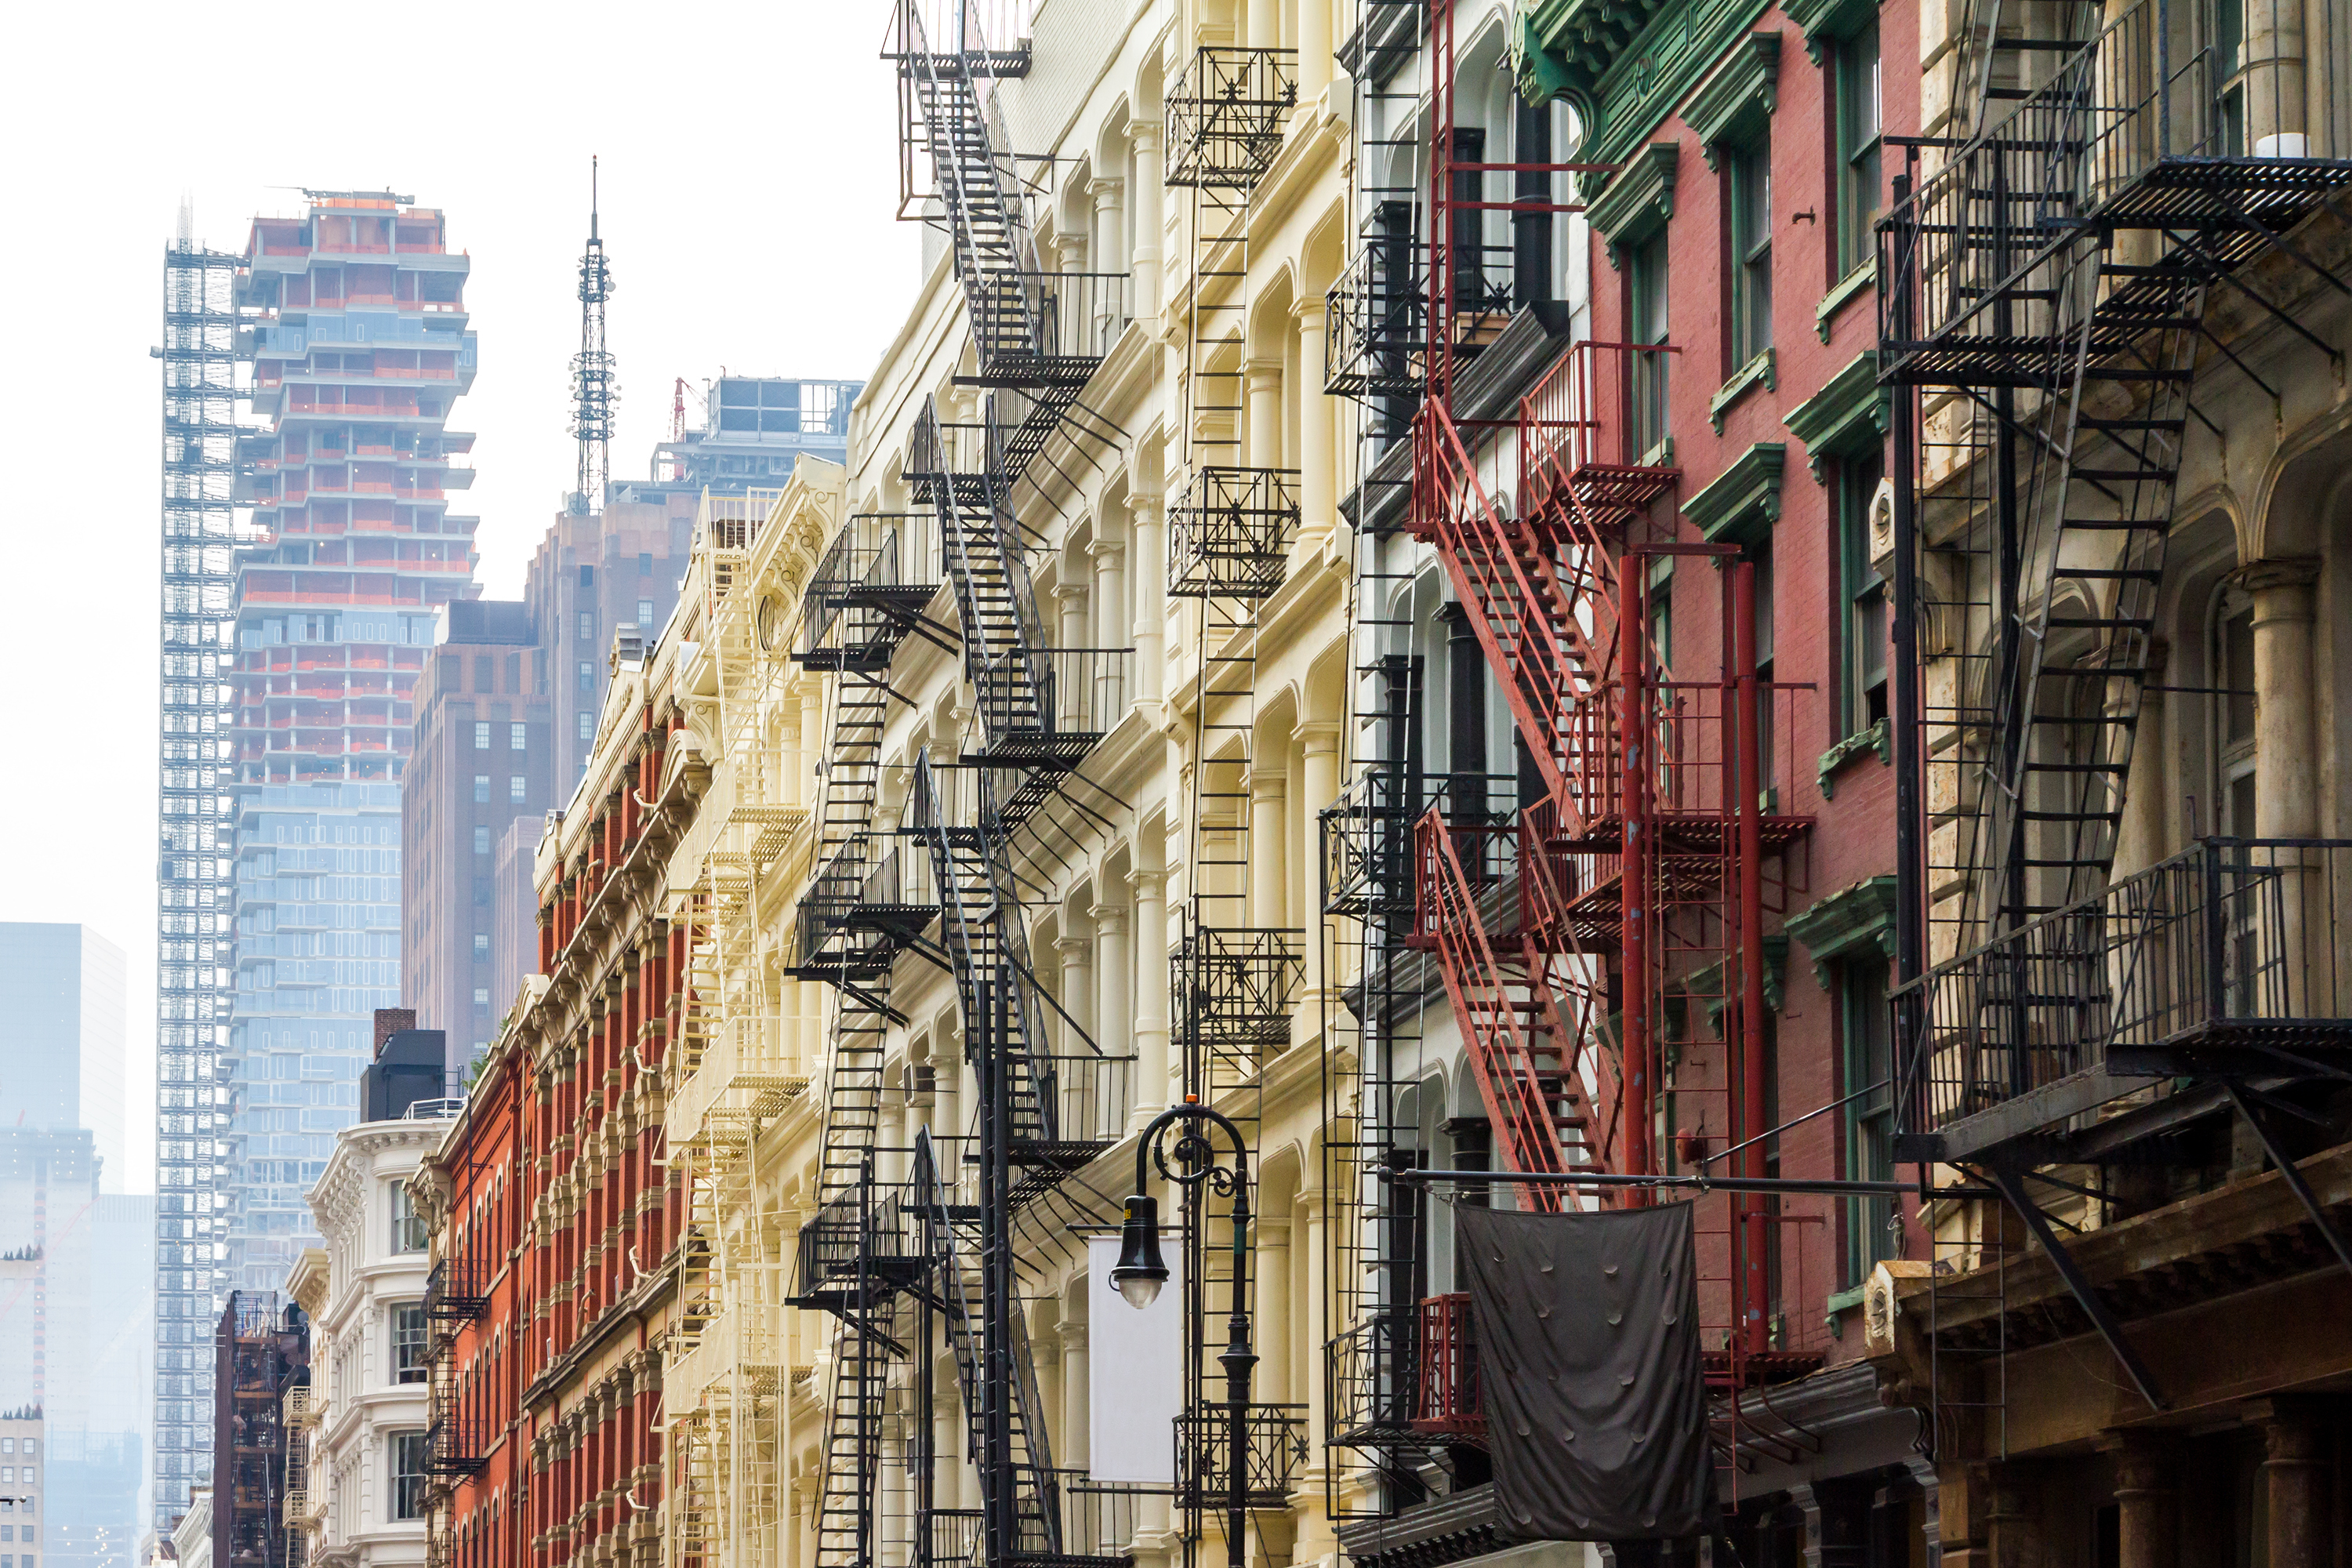 State of U.S. rental market: Rich get more options, poor suffer affordability crisis